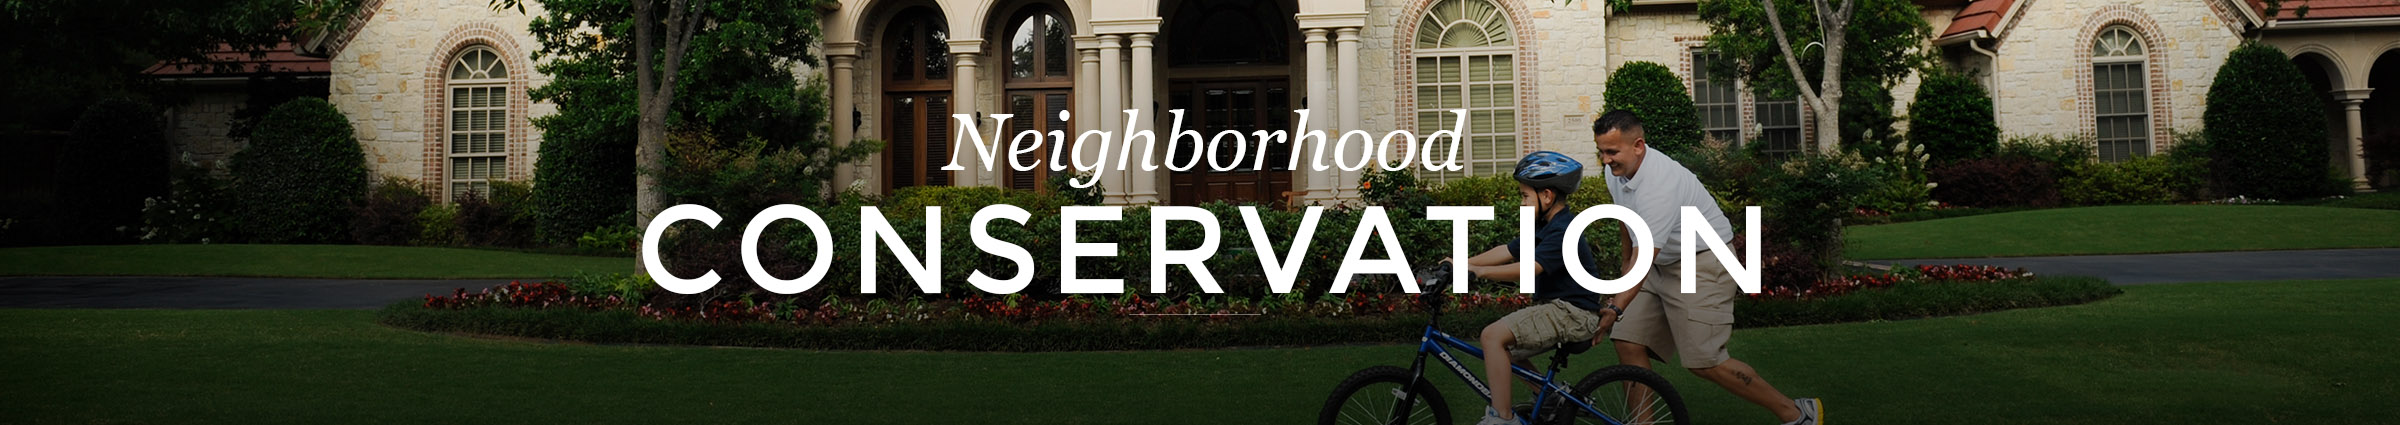 Neighborhood Conservation